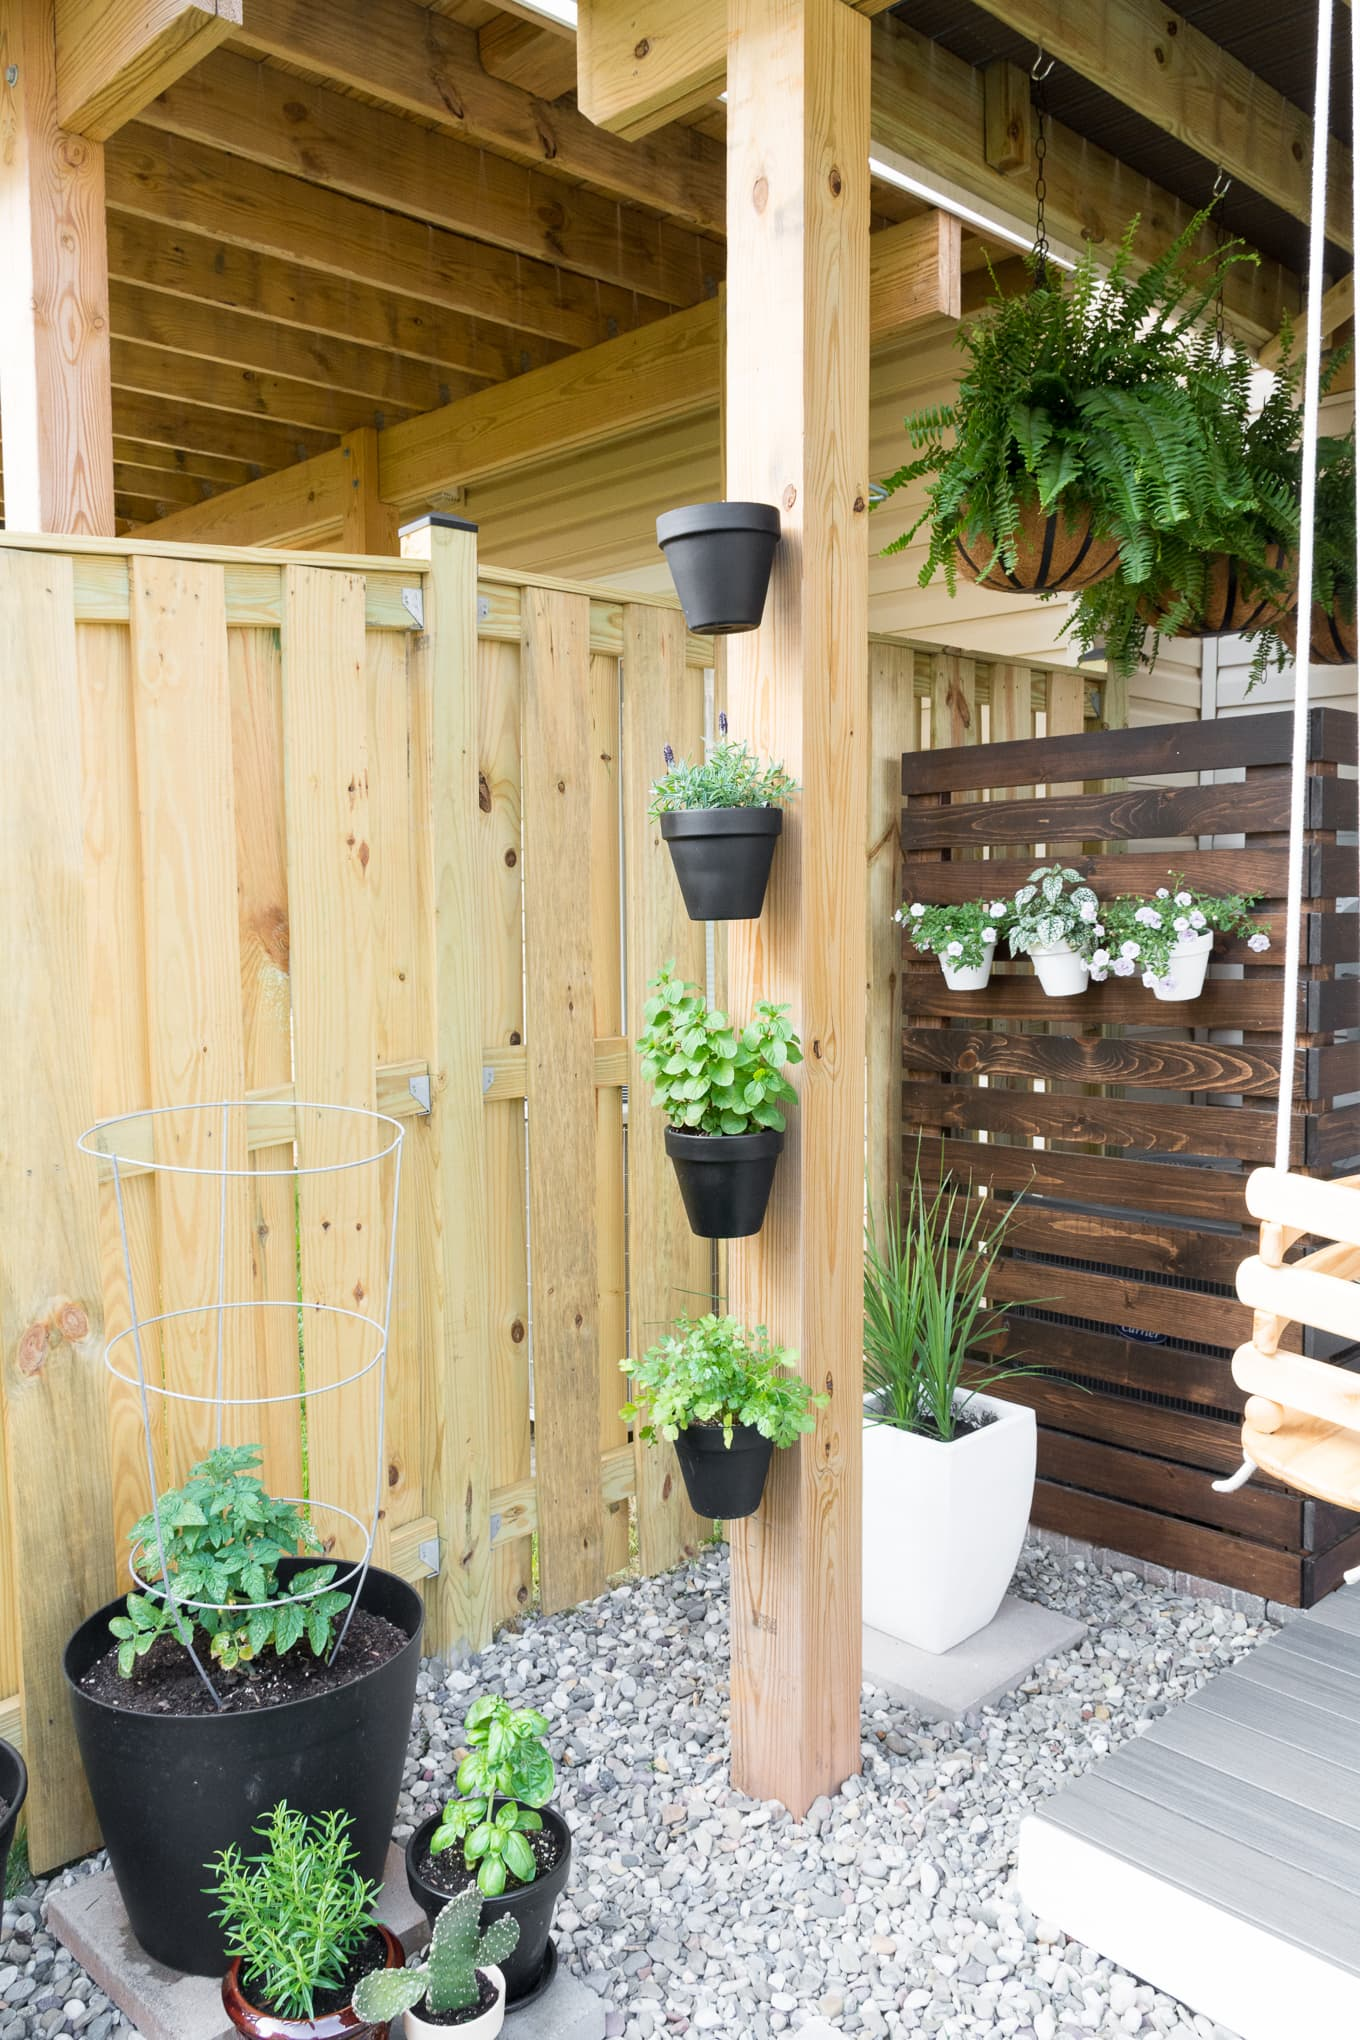 Modern design ideas for a small backyard // Hanging ferns // DIY AC screen // DIY HVAC unit screen // hanging herbs // pot klips // My Tiny Backyard // by Brittany Goldwyn